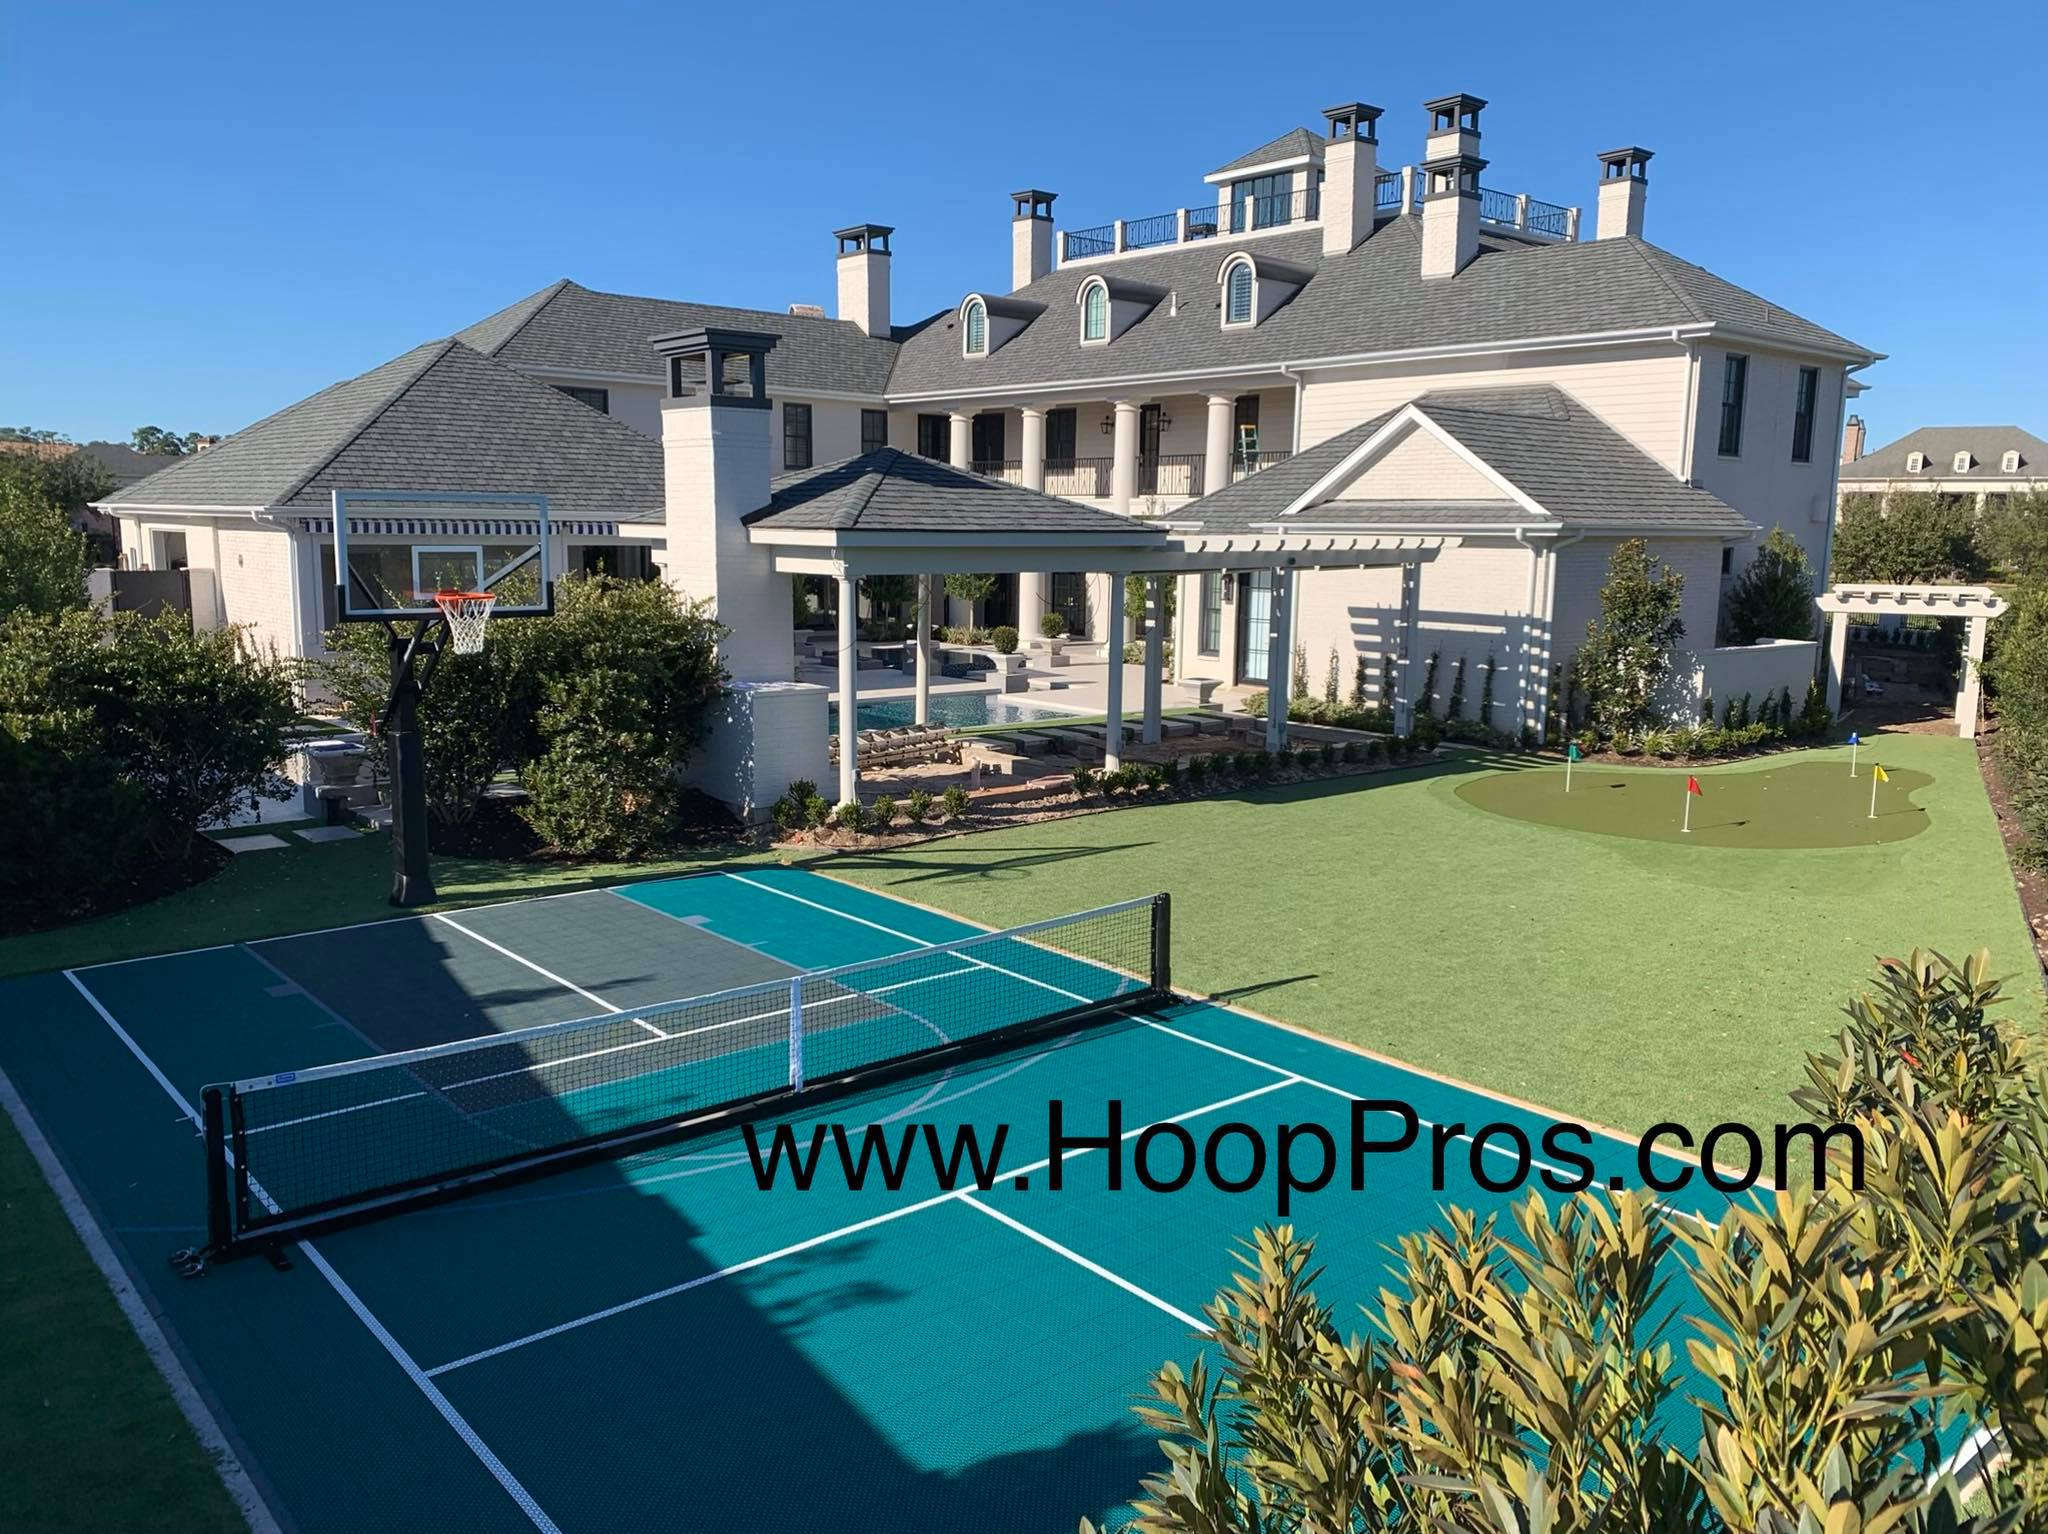 HoopPros.com | Houston Texas | Basketball | Driveways | Courts | Gyms